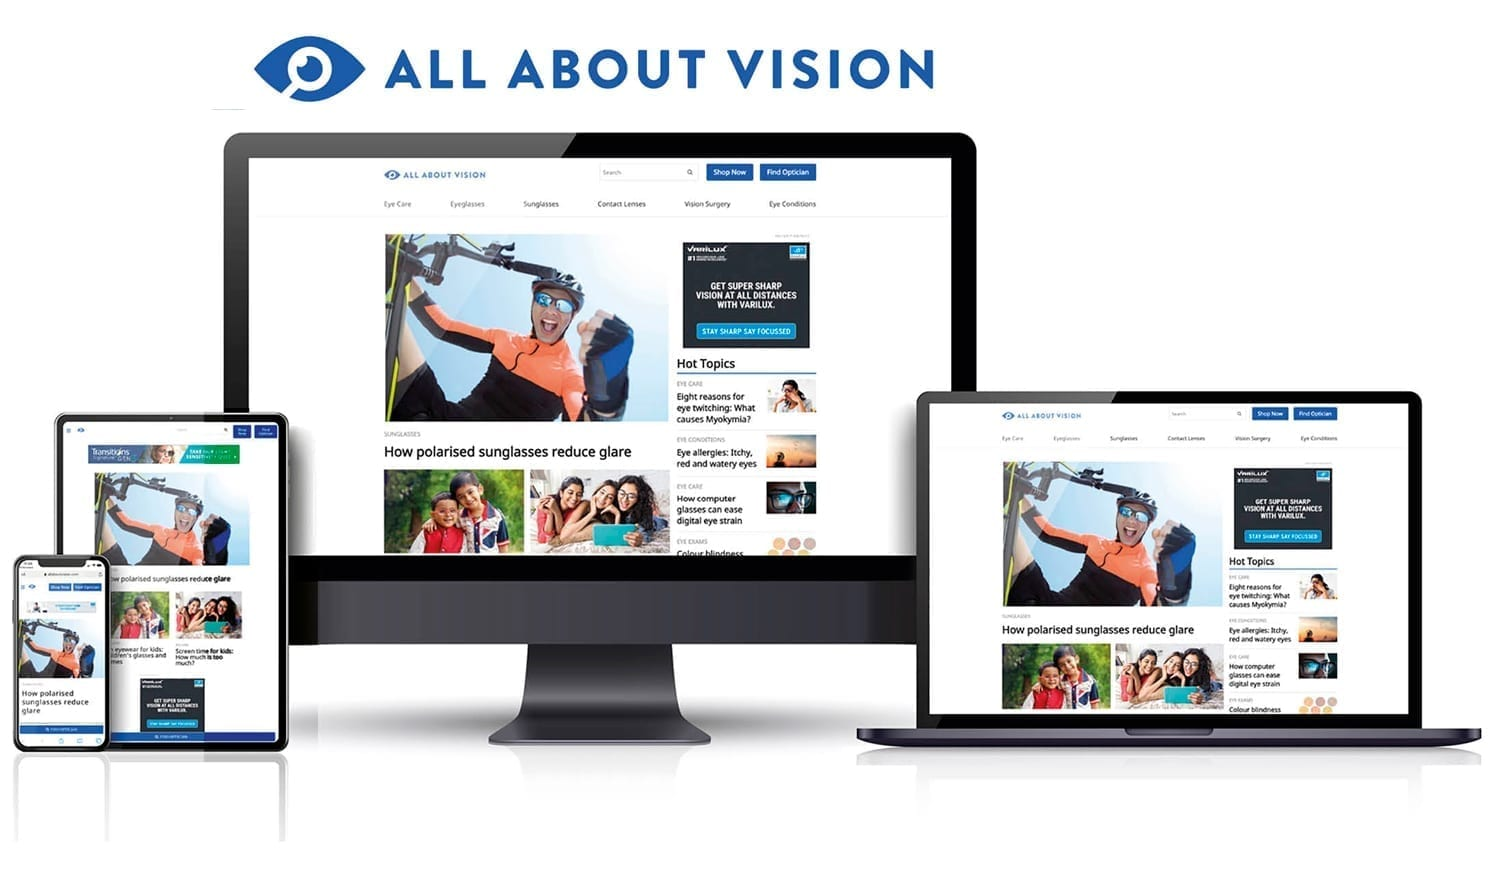 All About Vision is now also All About Vision India